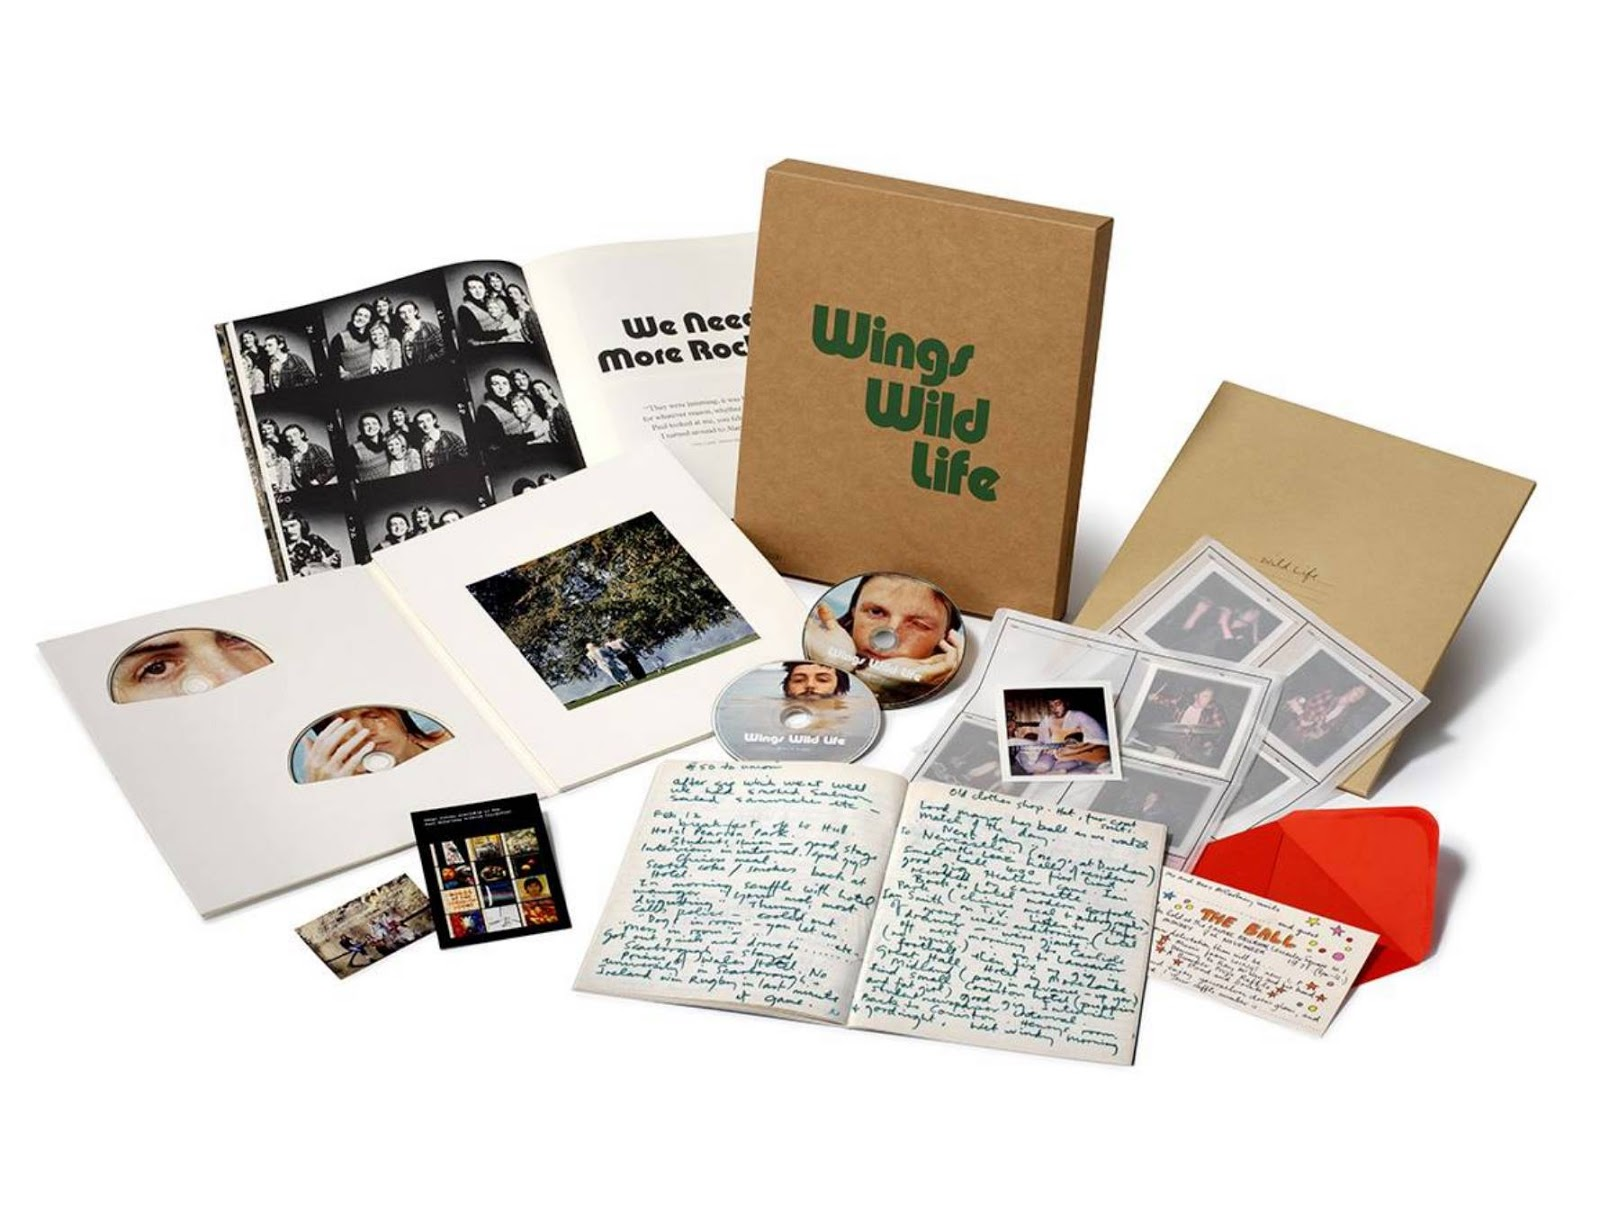 New Paul McCartney & Wings deluxe box sets coming | 94 7 WLS